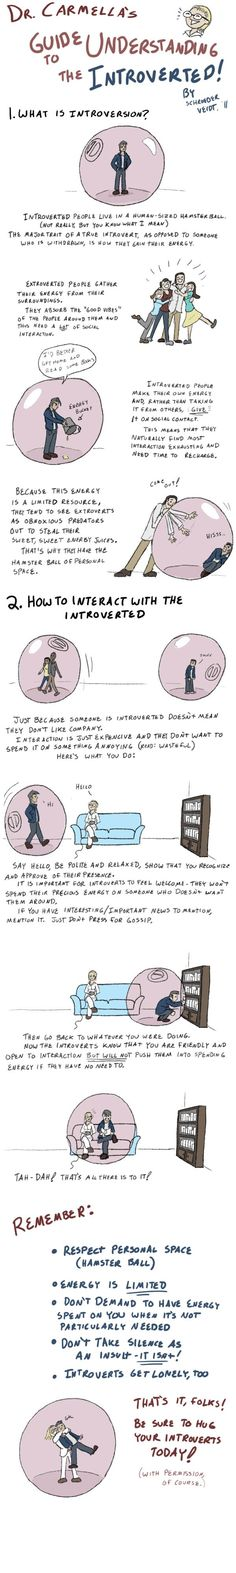 A Guide To Introverts.